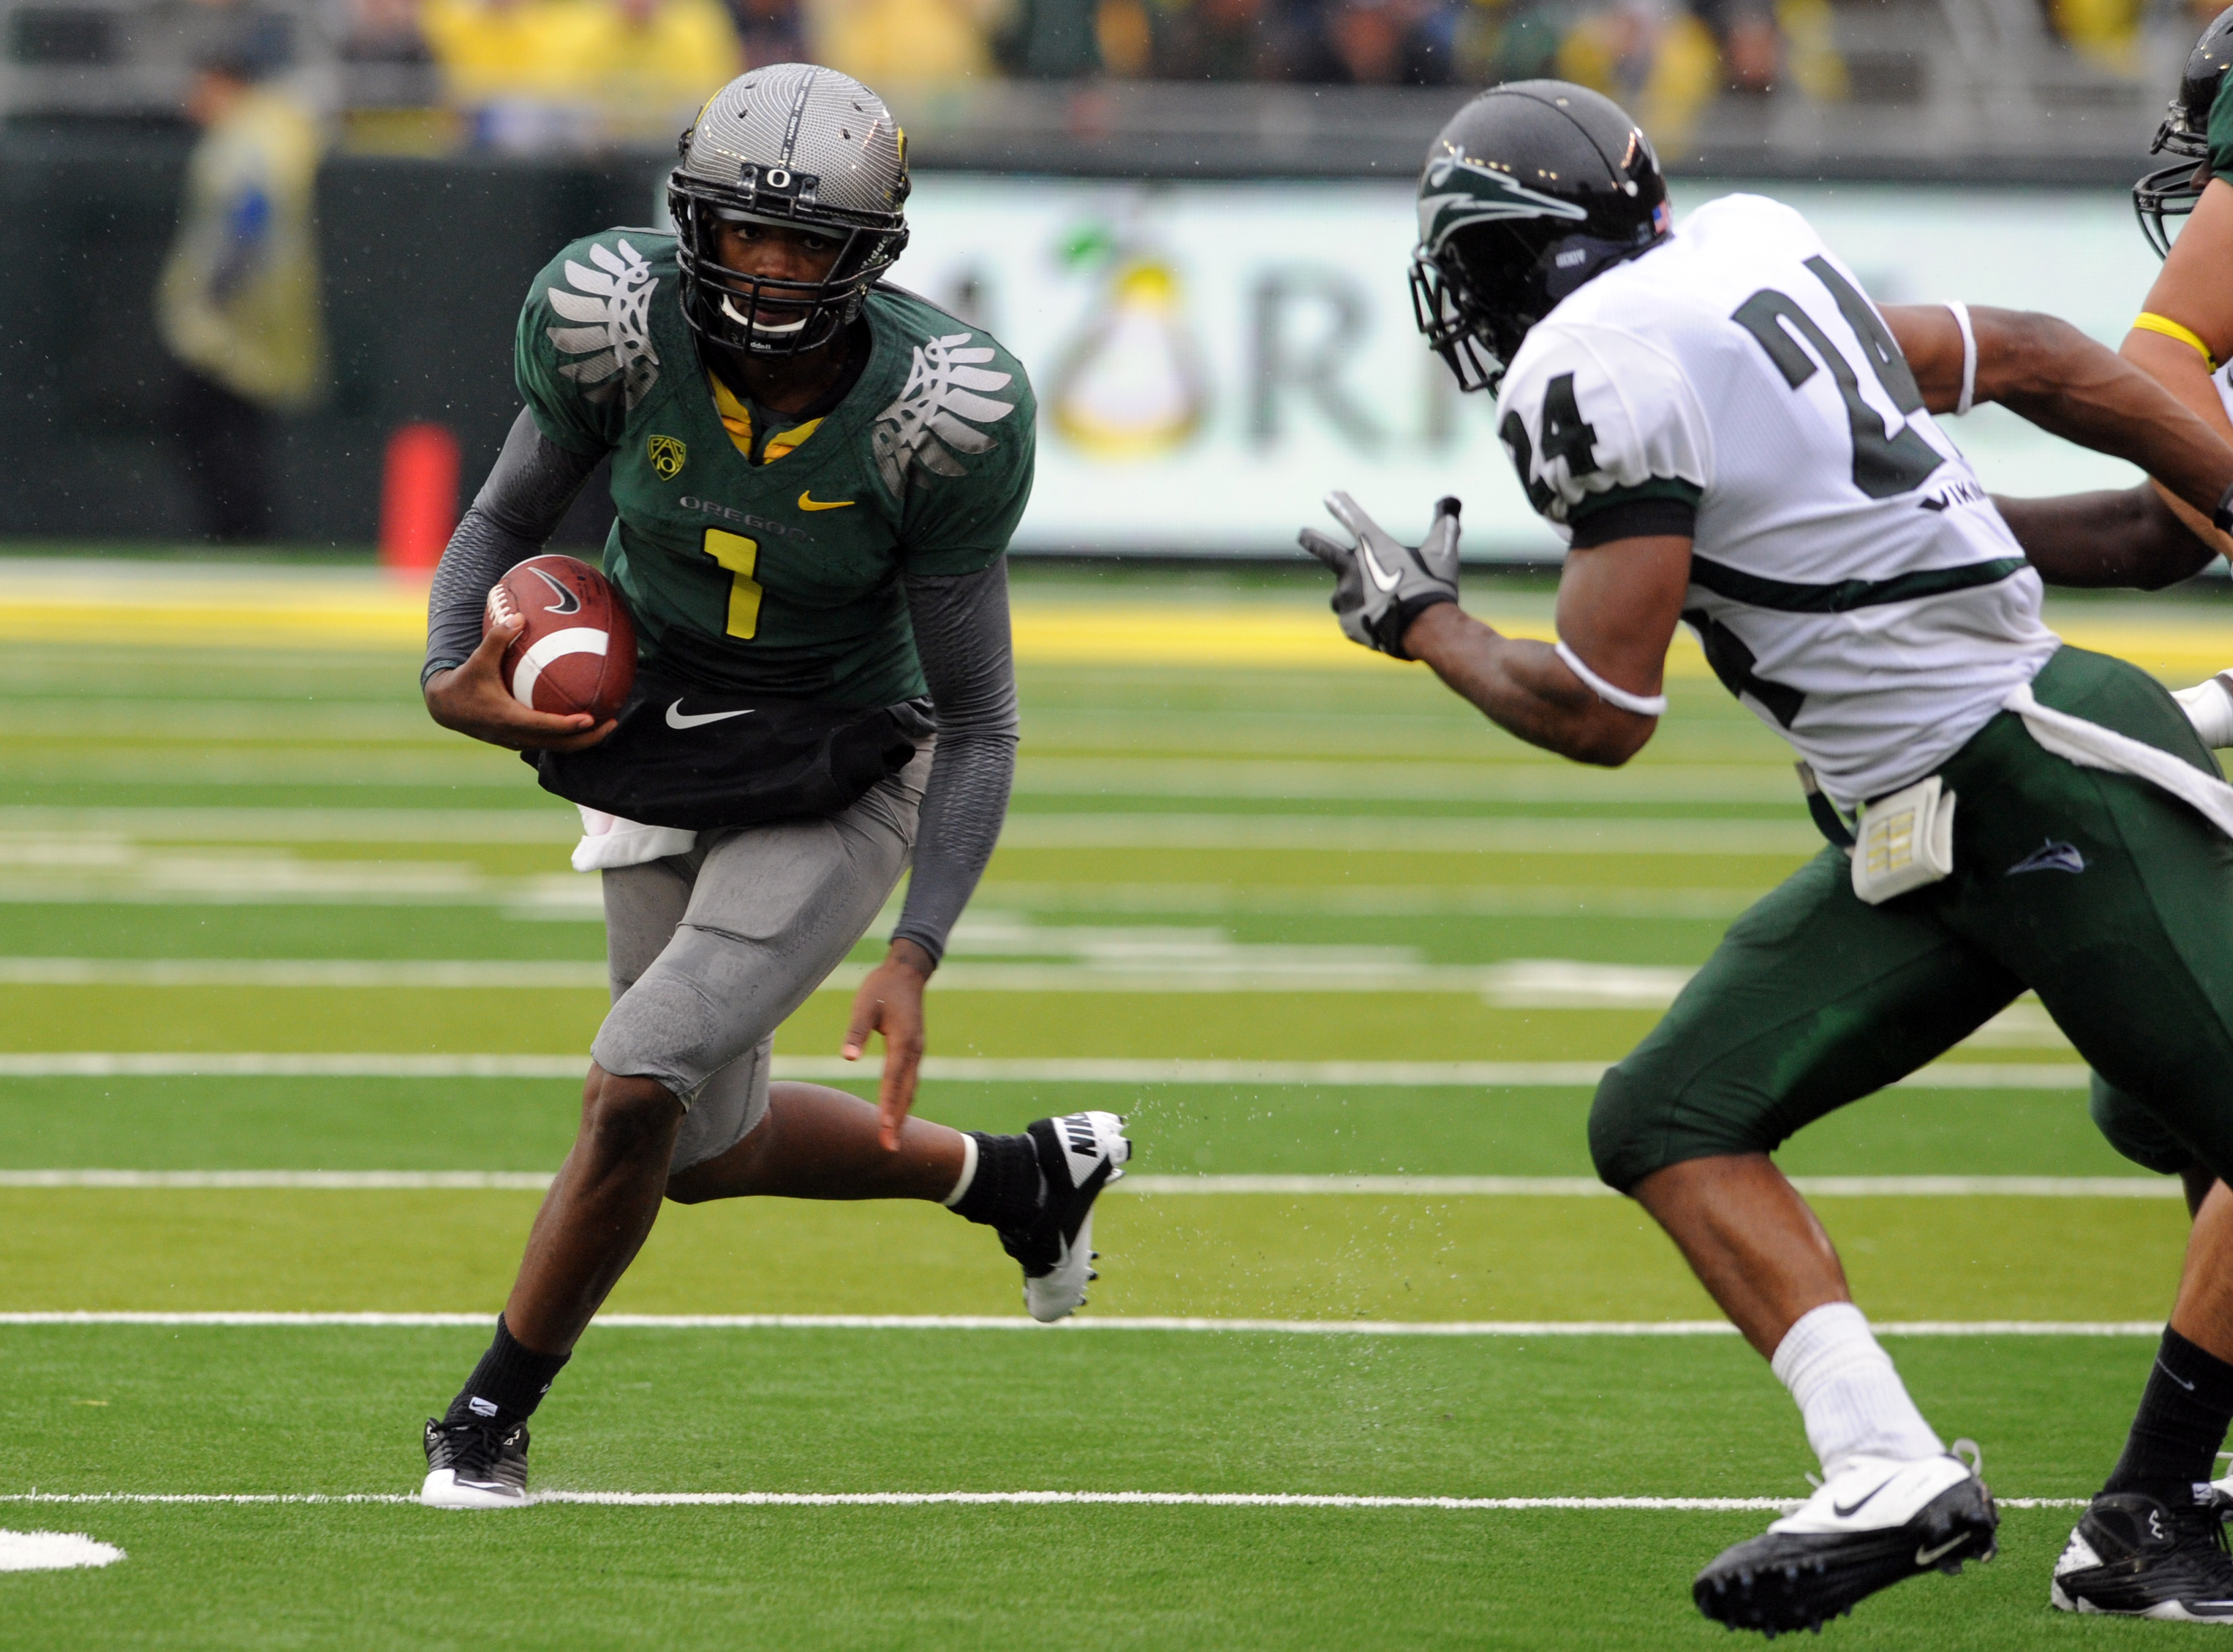 EUGENE, OR - SEPTEMBER 18: Quarterback Darron Thomas #1 of the Oregon Ducks looks for some running room as cornerback Deshawn Shead #24 of the Portland State Vikings closes in during the first quarter of the game against  at Autzen Stadium on September 18